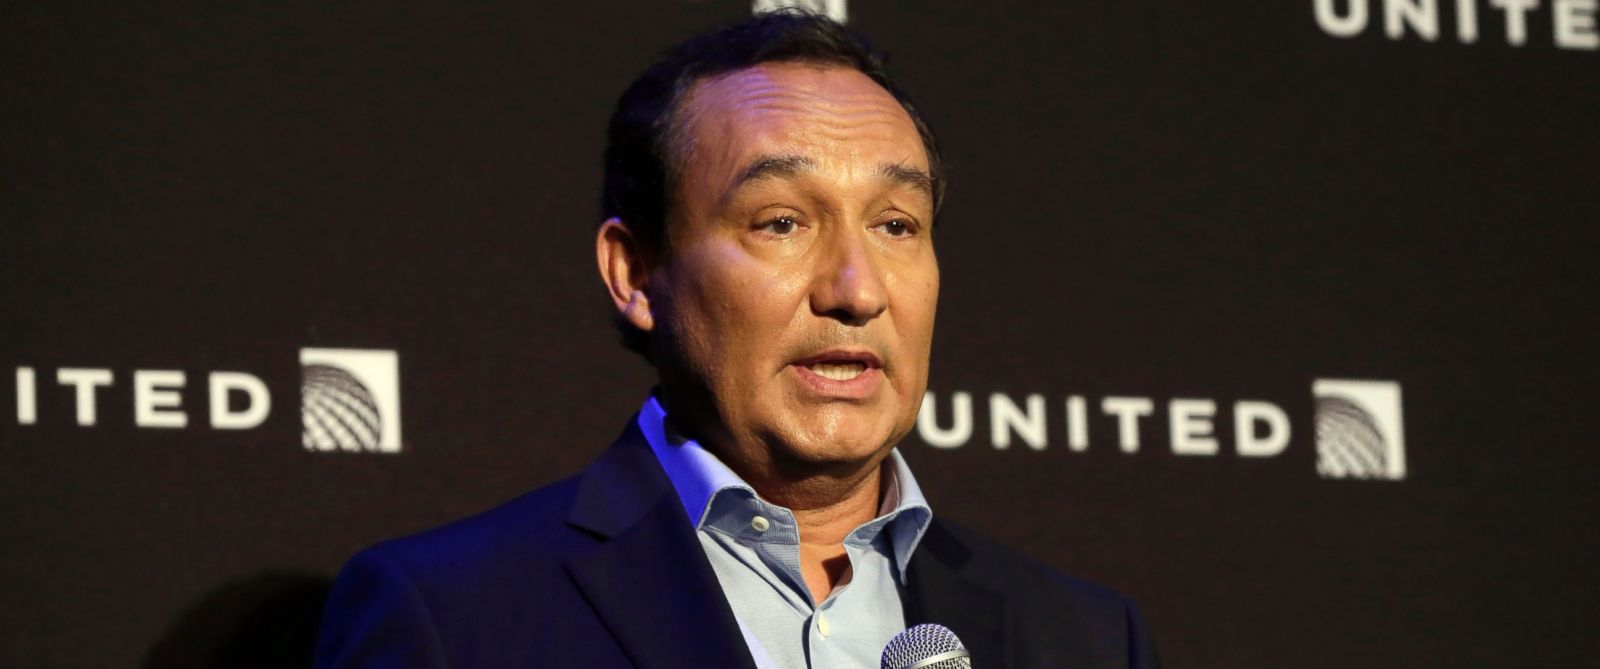 PHOTO: United Airlines CEO Oscar Munoz delivers remarks in New York, during a presentation of the carriers new Polaris service, June 6, 2016.